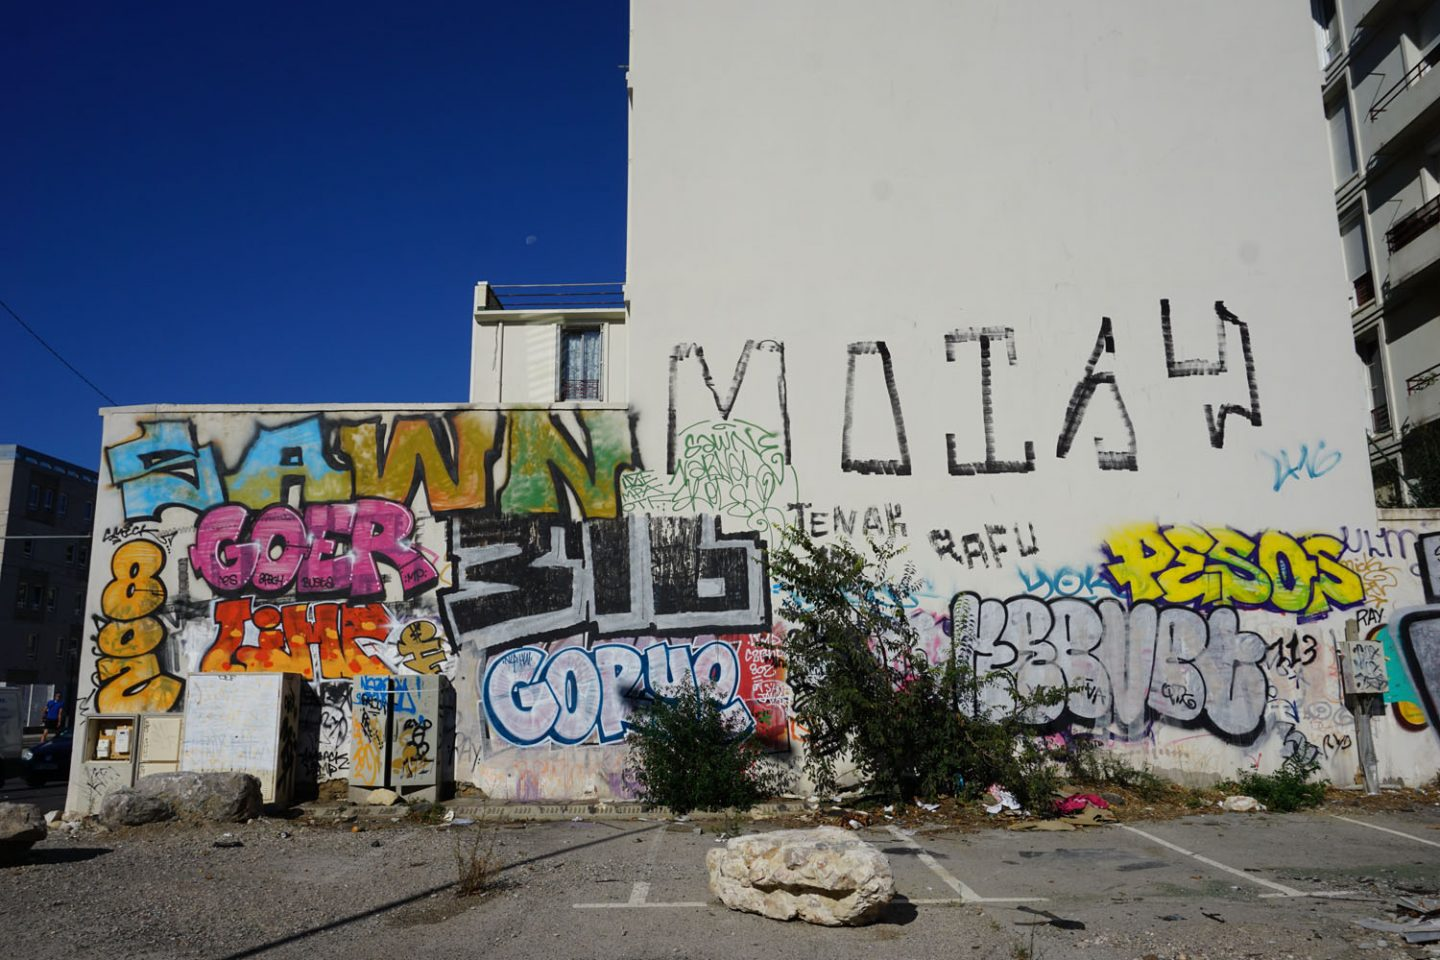 Montpellier: All walls all paint